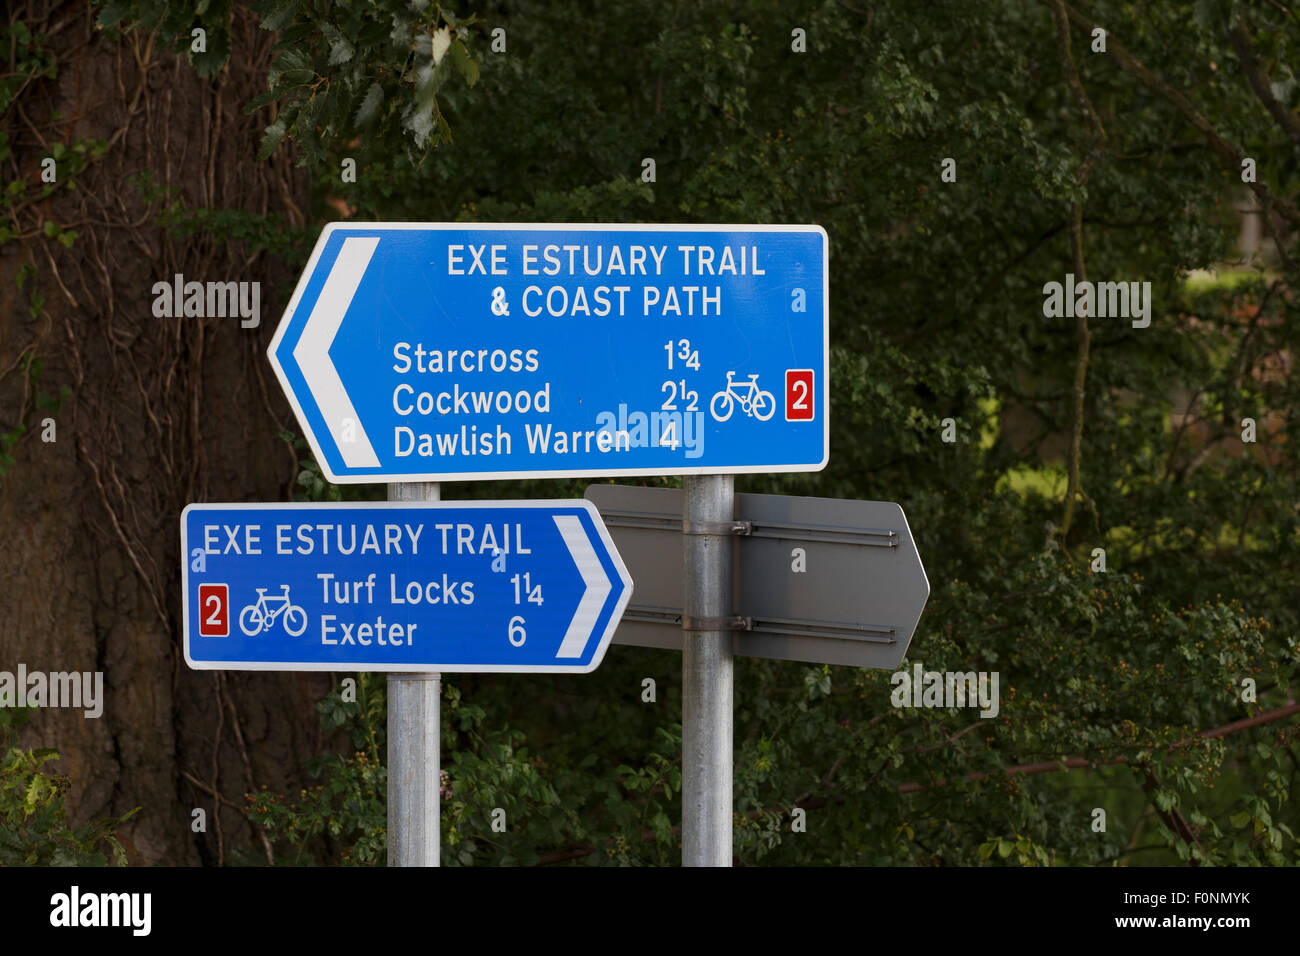 Sign on the Exe Estuary Trail and Coast path, a cycle path and footpath along the banks of the river Exe. - Stock Image